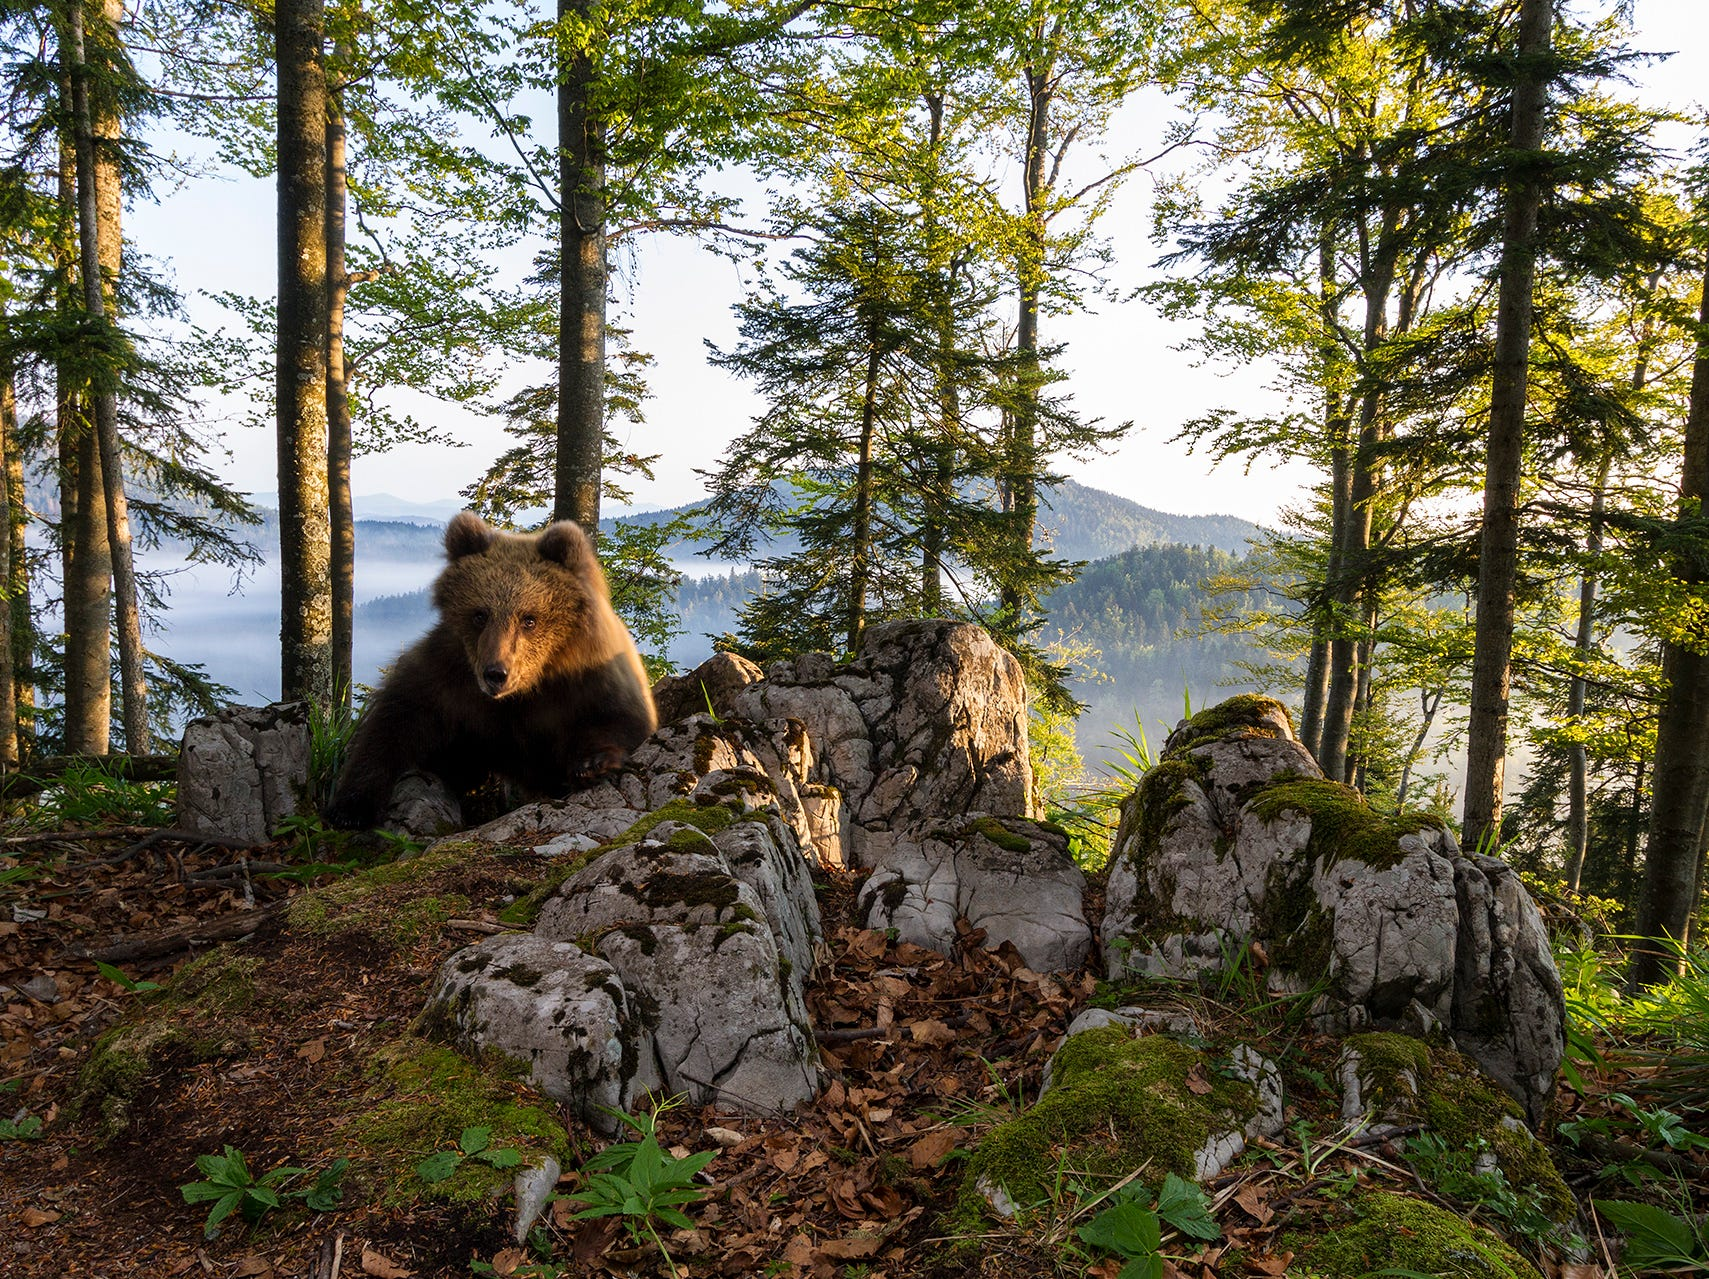 Wideangle DSLR phototrap image of a young European brown bear in perfect morning light in a central European forest.